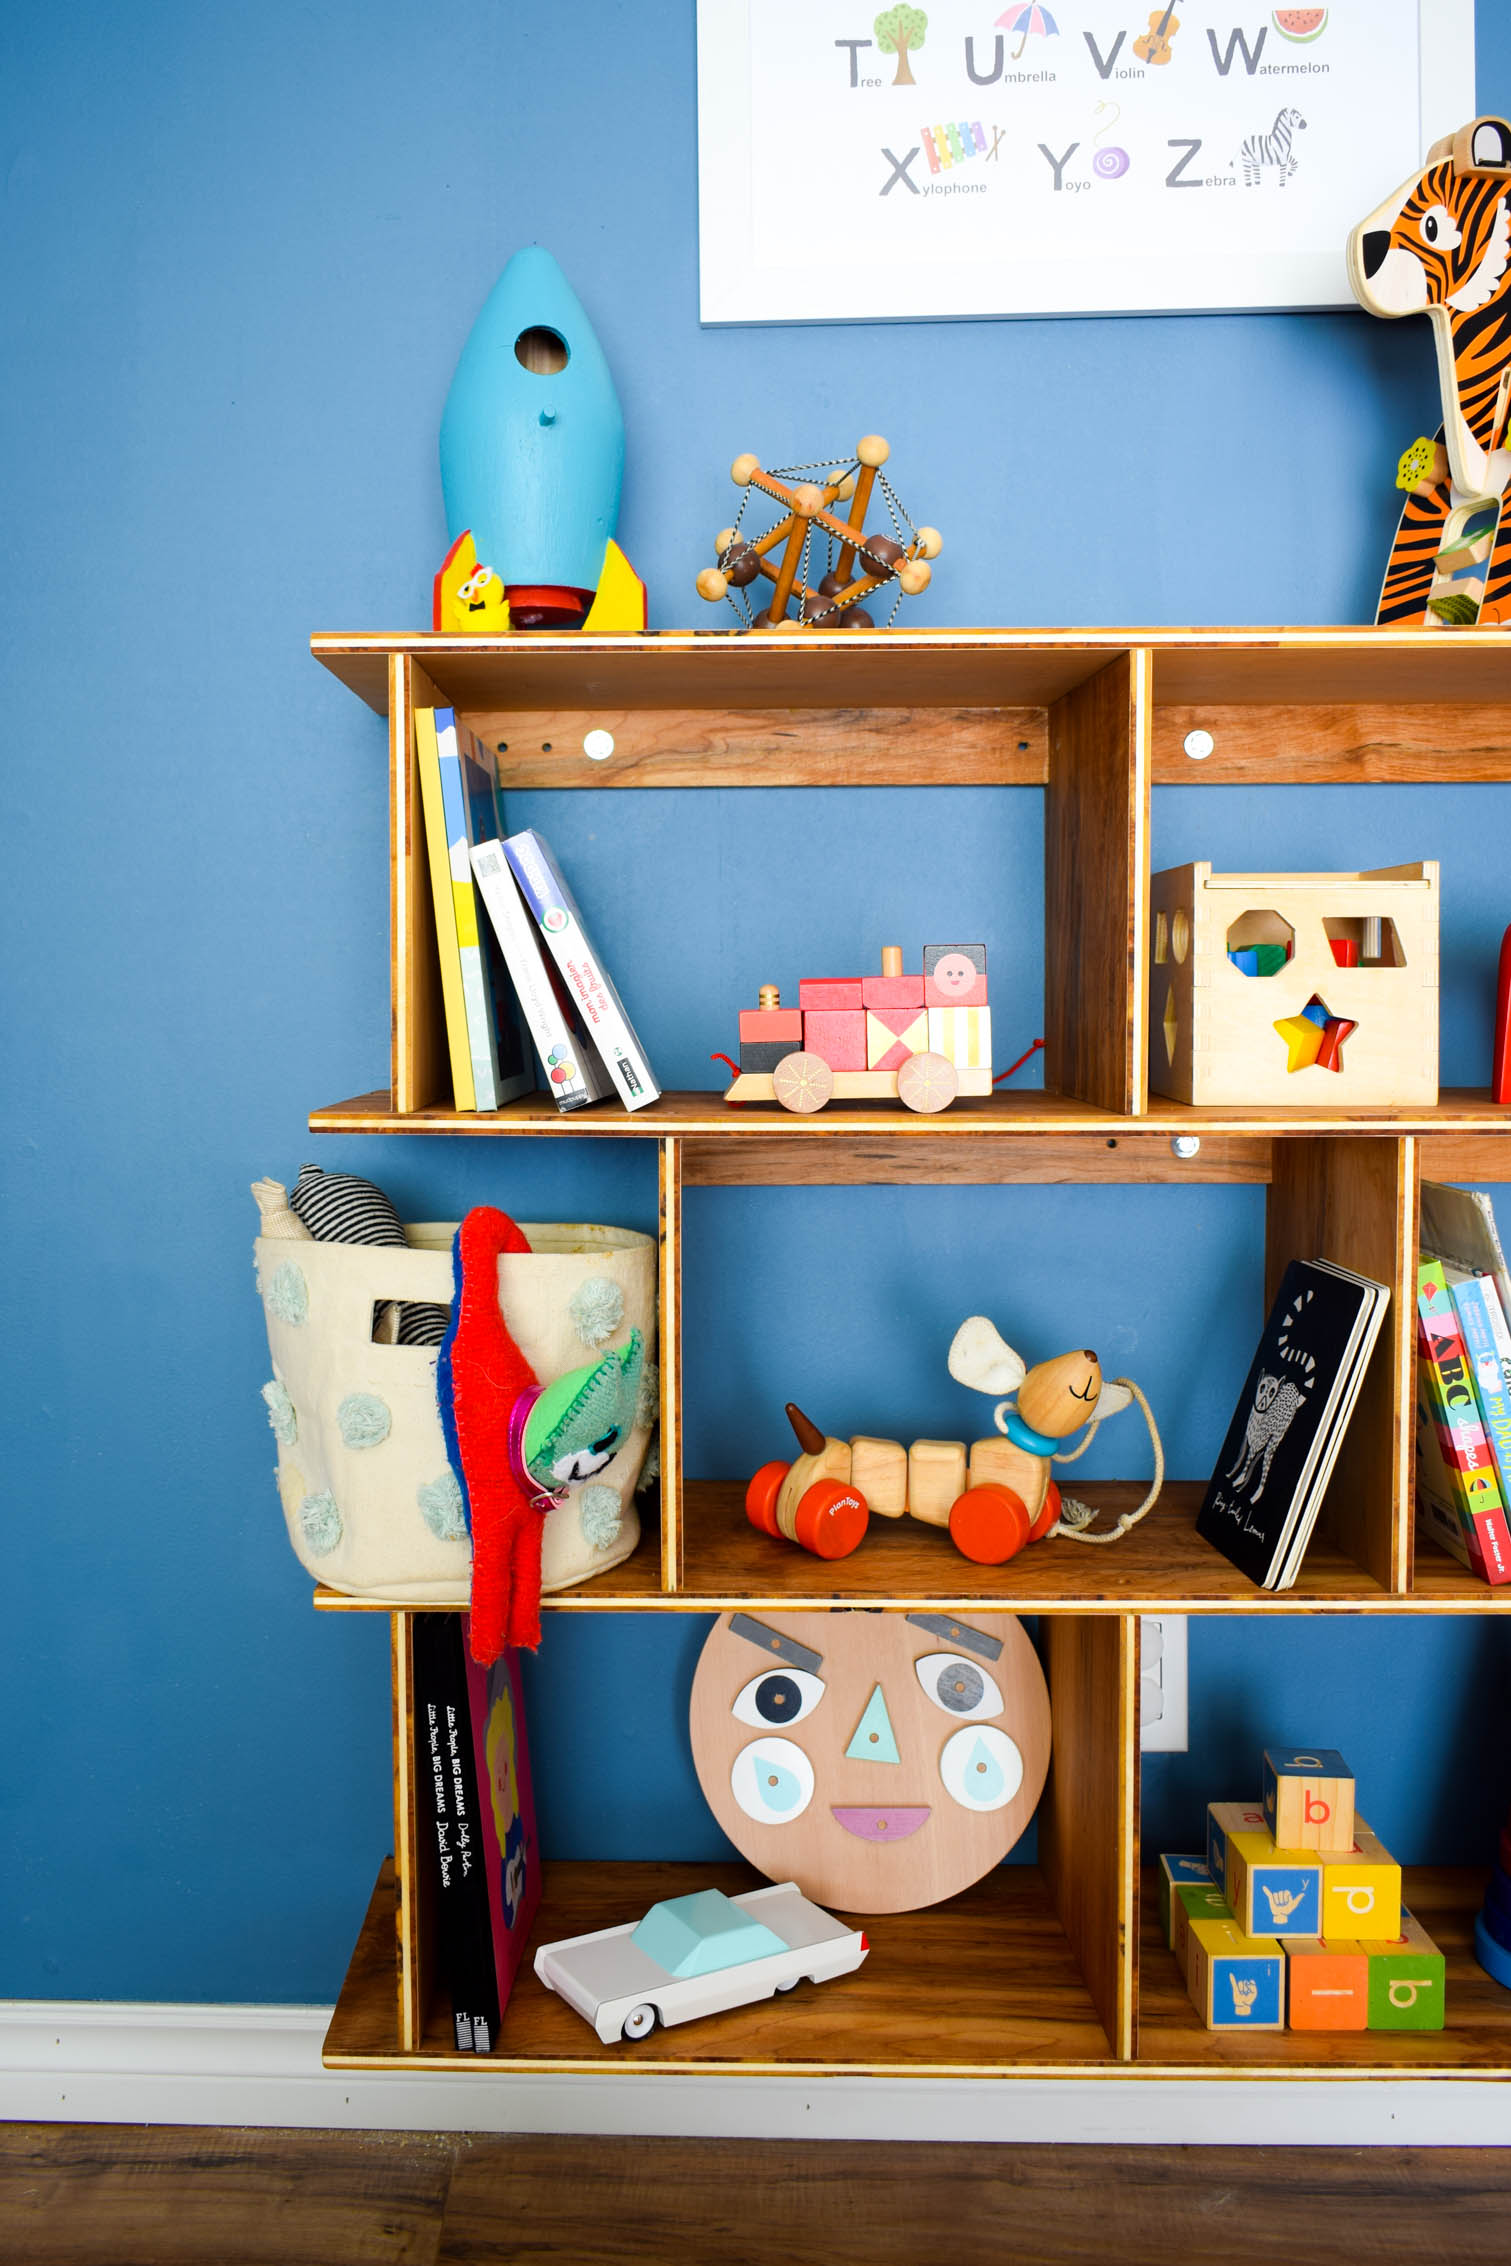 Embrace the Montessori method with an easy to access toy set-up for your kid & marry your decor style, with this DIY Mid Century Modern Montessori Toy Shelf. Full build plans and cut list on the blog.